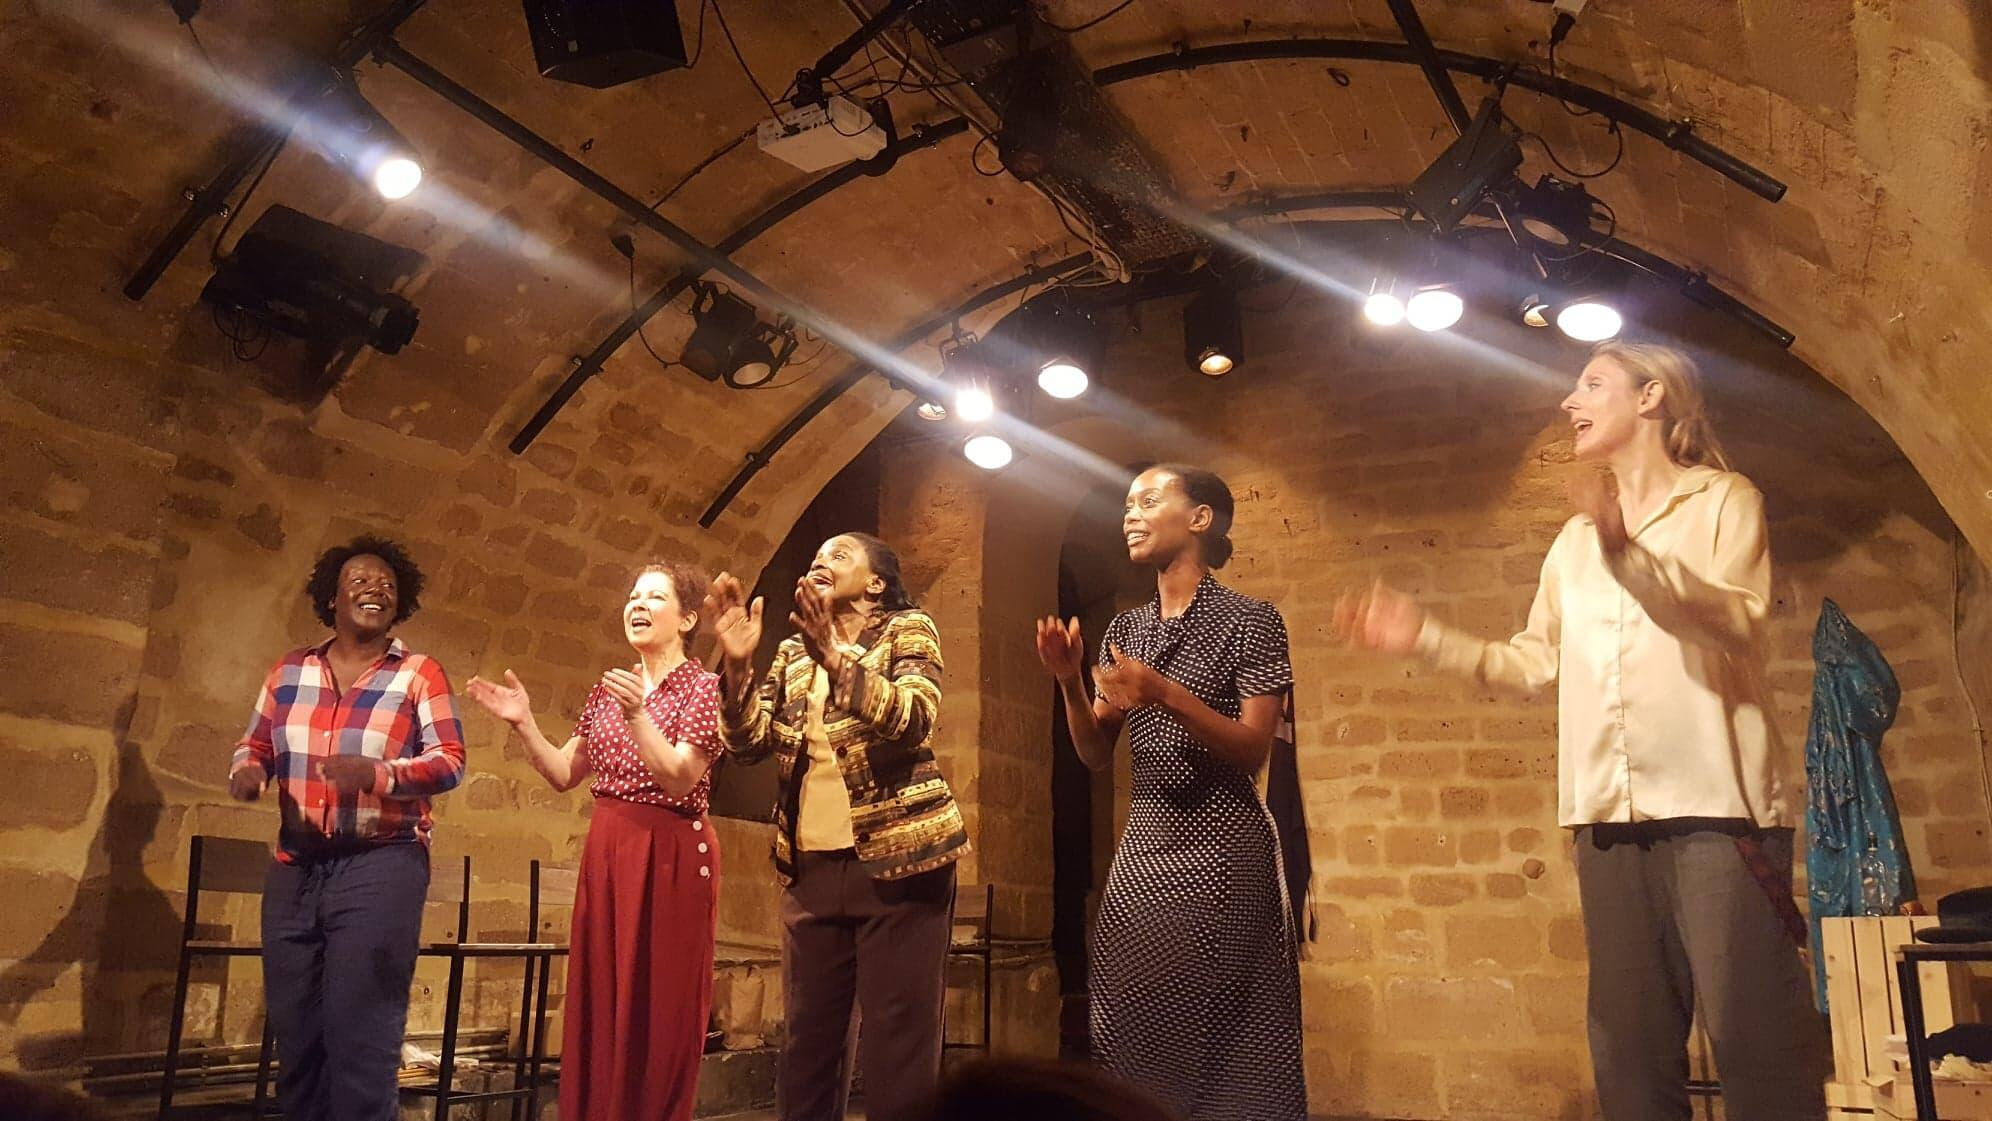 Ursuline Kairson (in the middle) performs Maya Angelou in the play 'Maya, une voix,' or 'Maya, a voice,' 20 July 2019